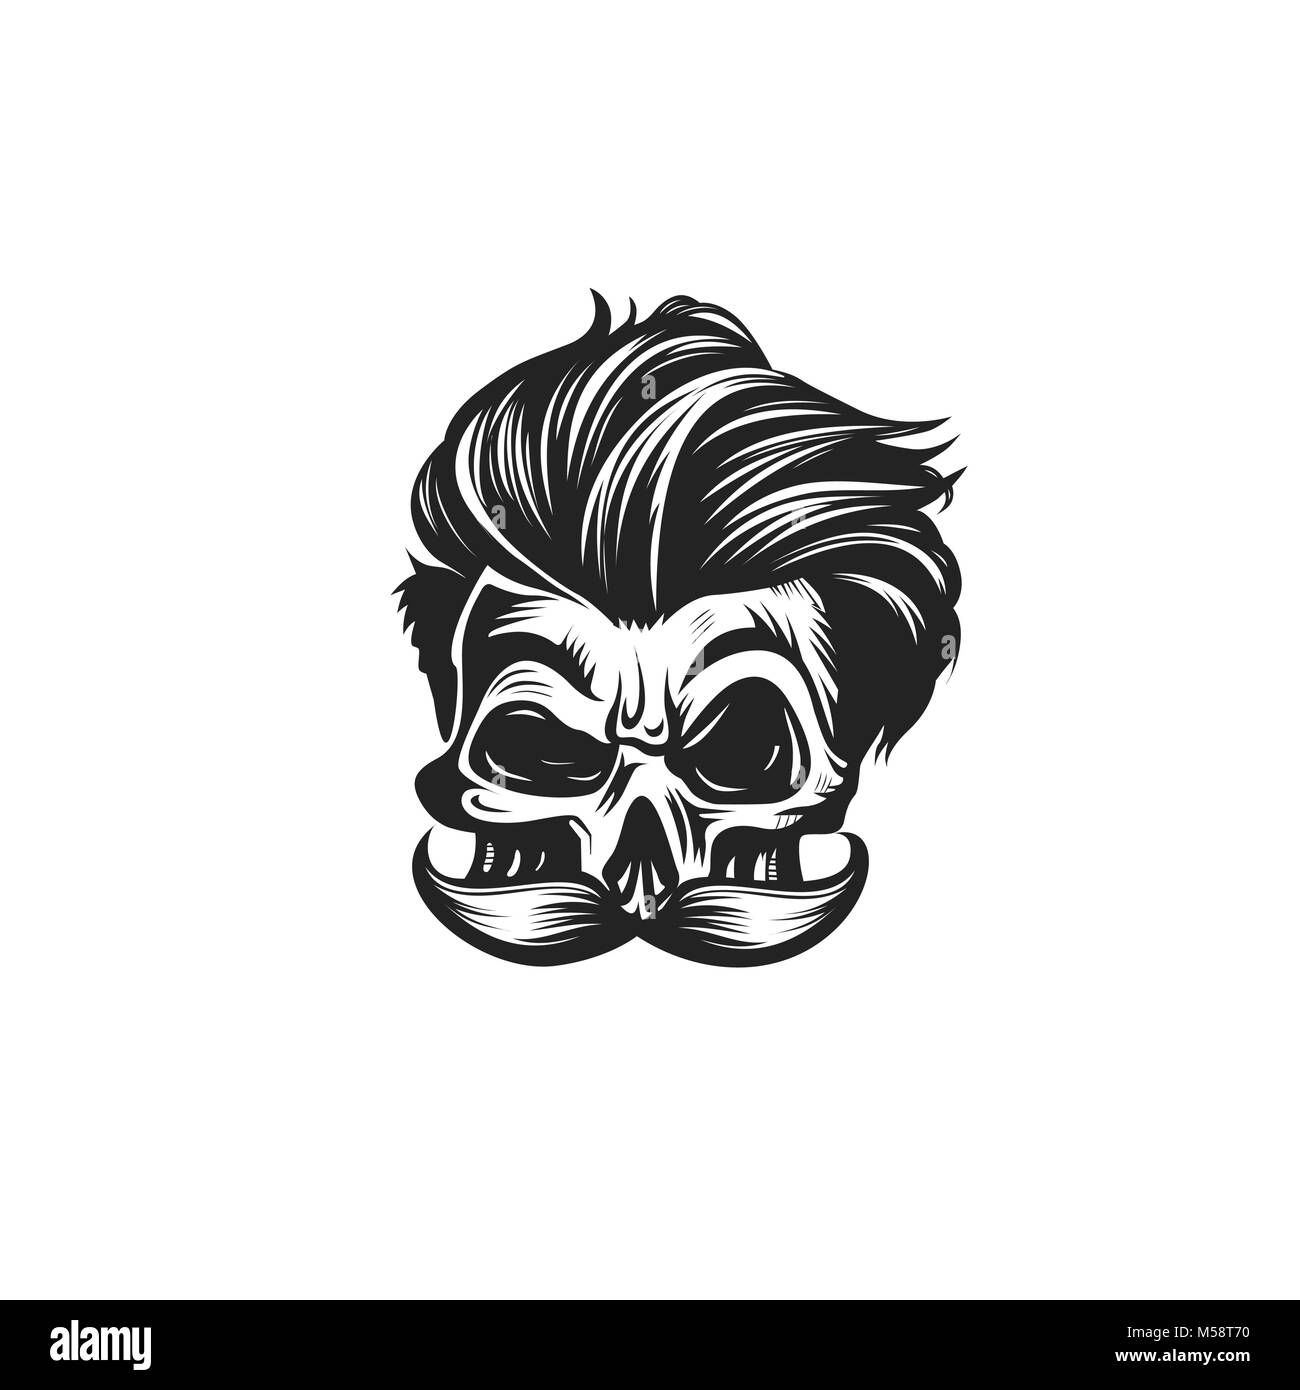 Swag skull vector illustration Stock Vector